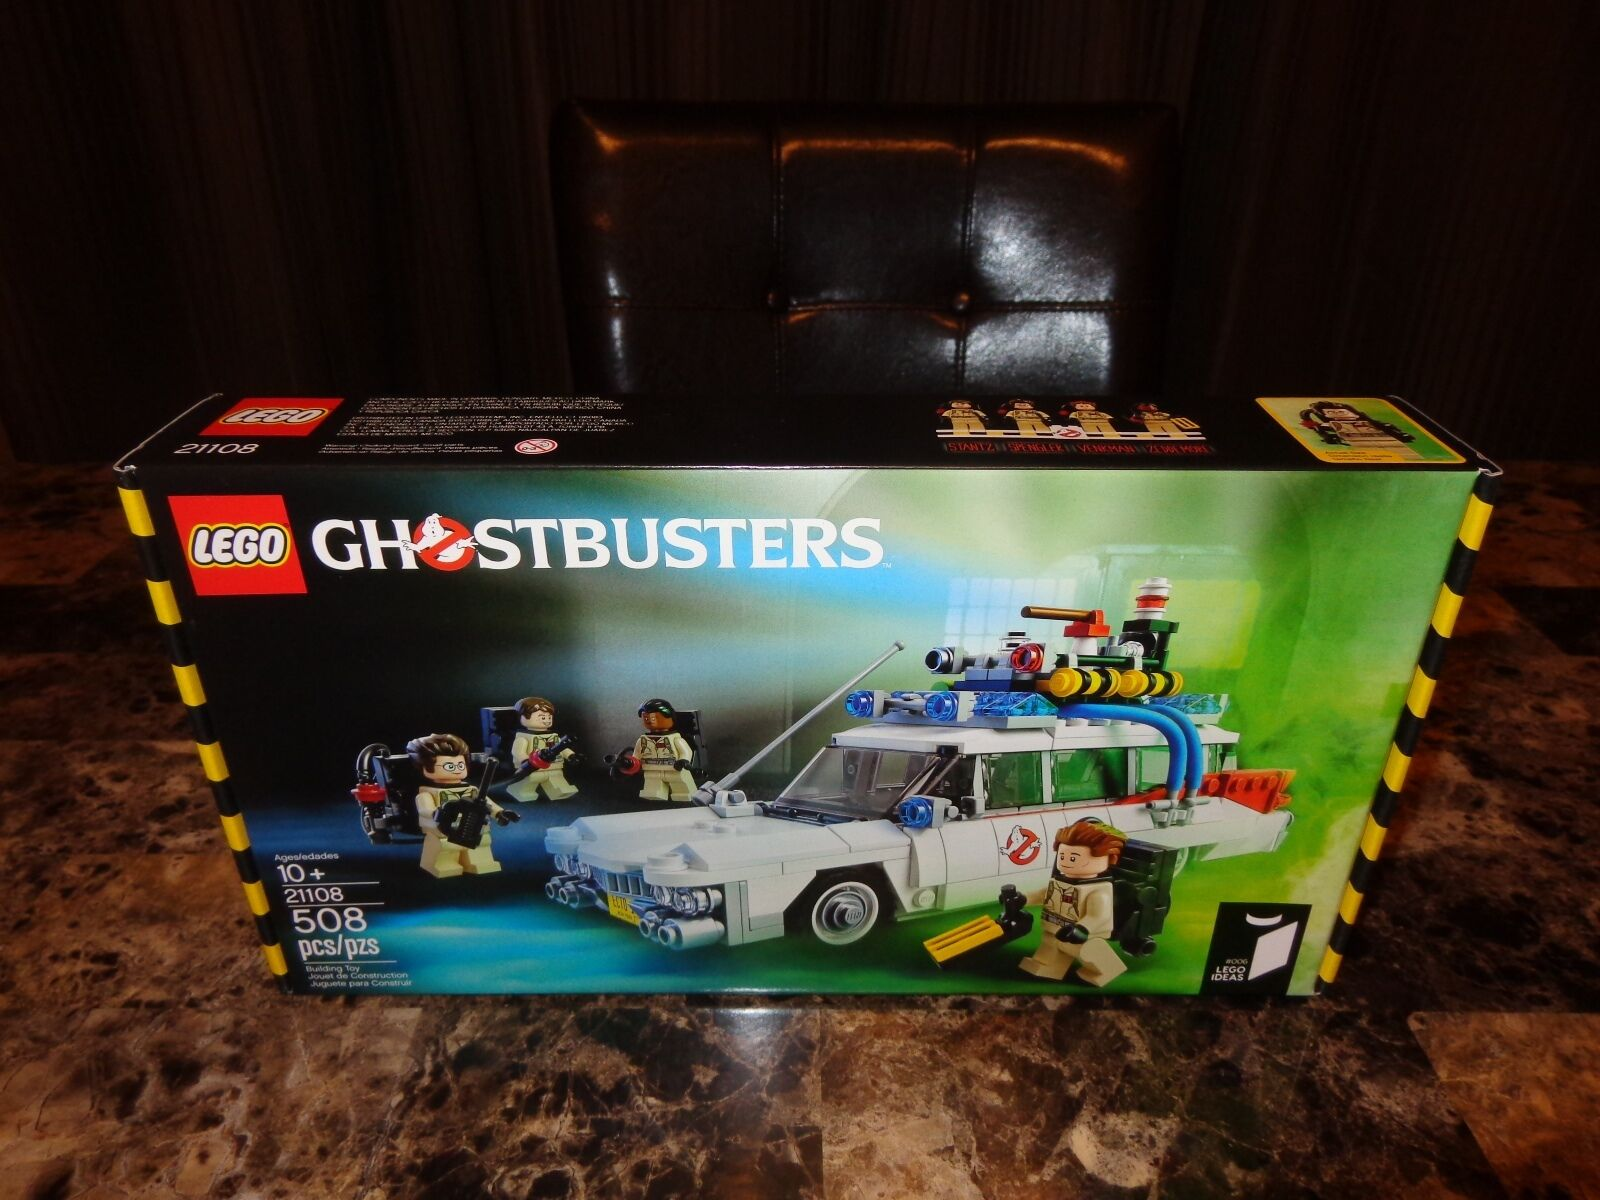 Ghostbusters Rare Ecto-1 Lego Toy Set 30th Anniversary Limited Edition 508 Piece